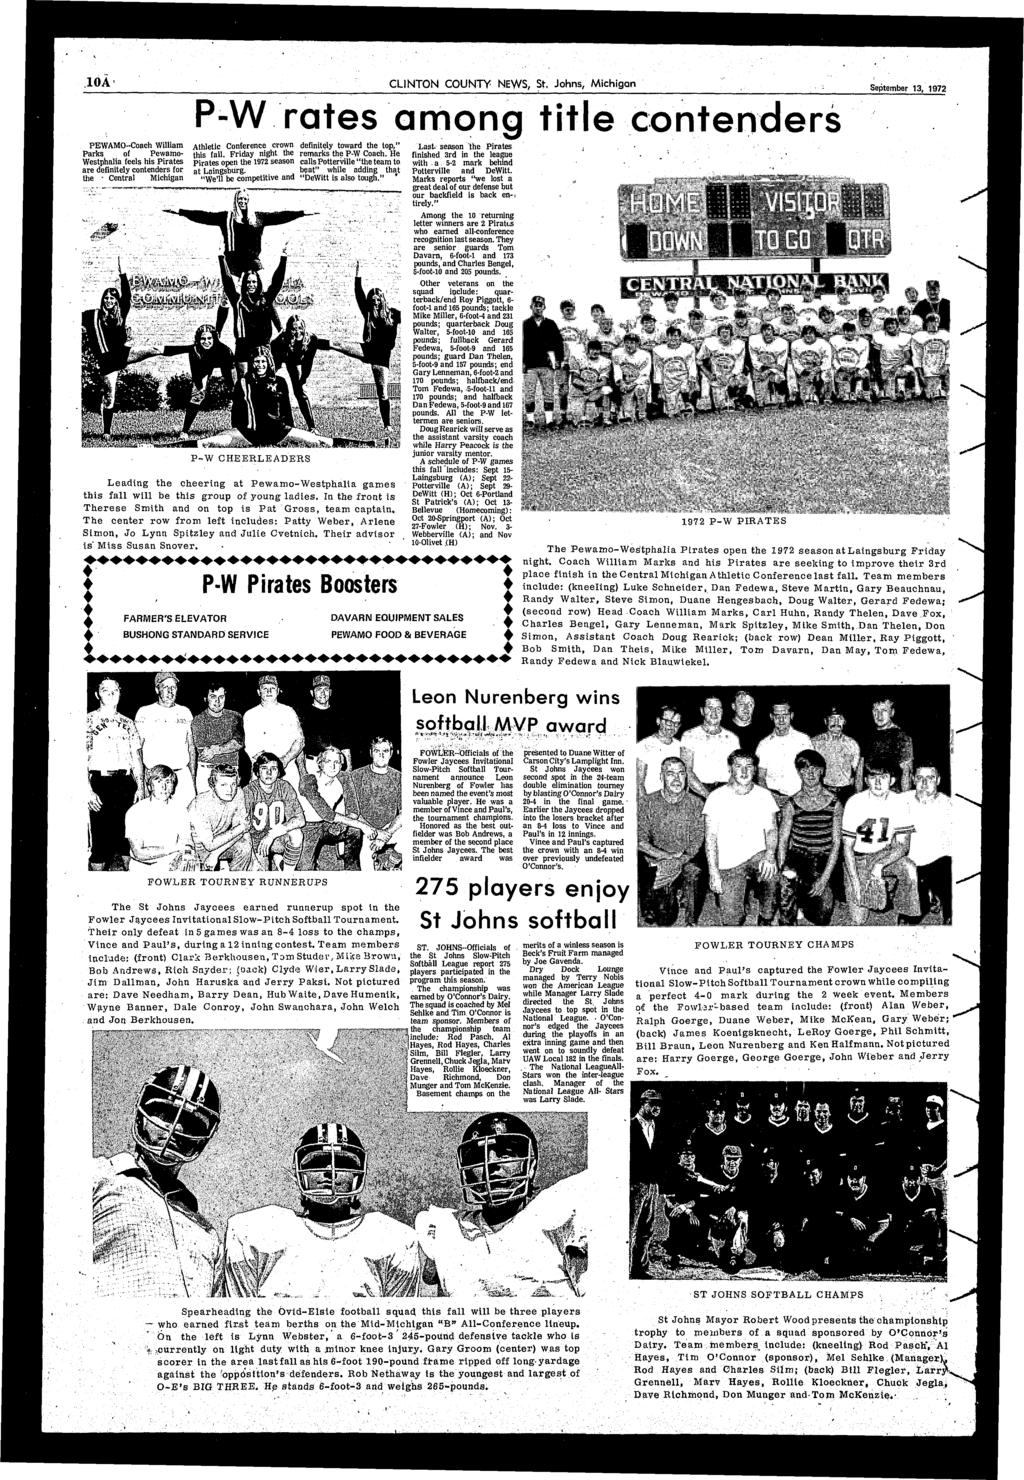 10A CLINTON COUNTY NEWS, St Johns, Michigan September 13, 1972 PEWAMO--Coach William Parks of Fewamo- Westphalia feels his Pirates are definitely contenders for the - Central Michigan P-W rates amona